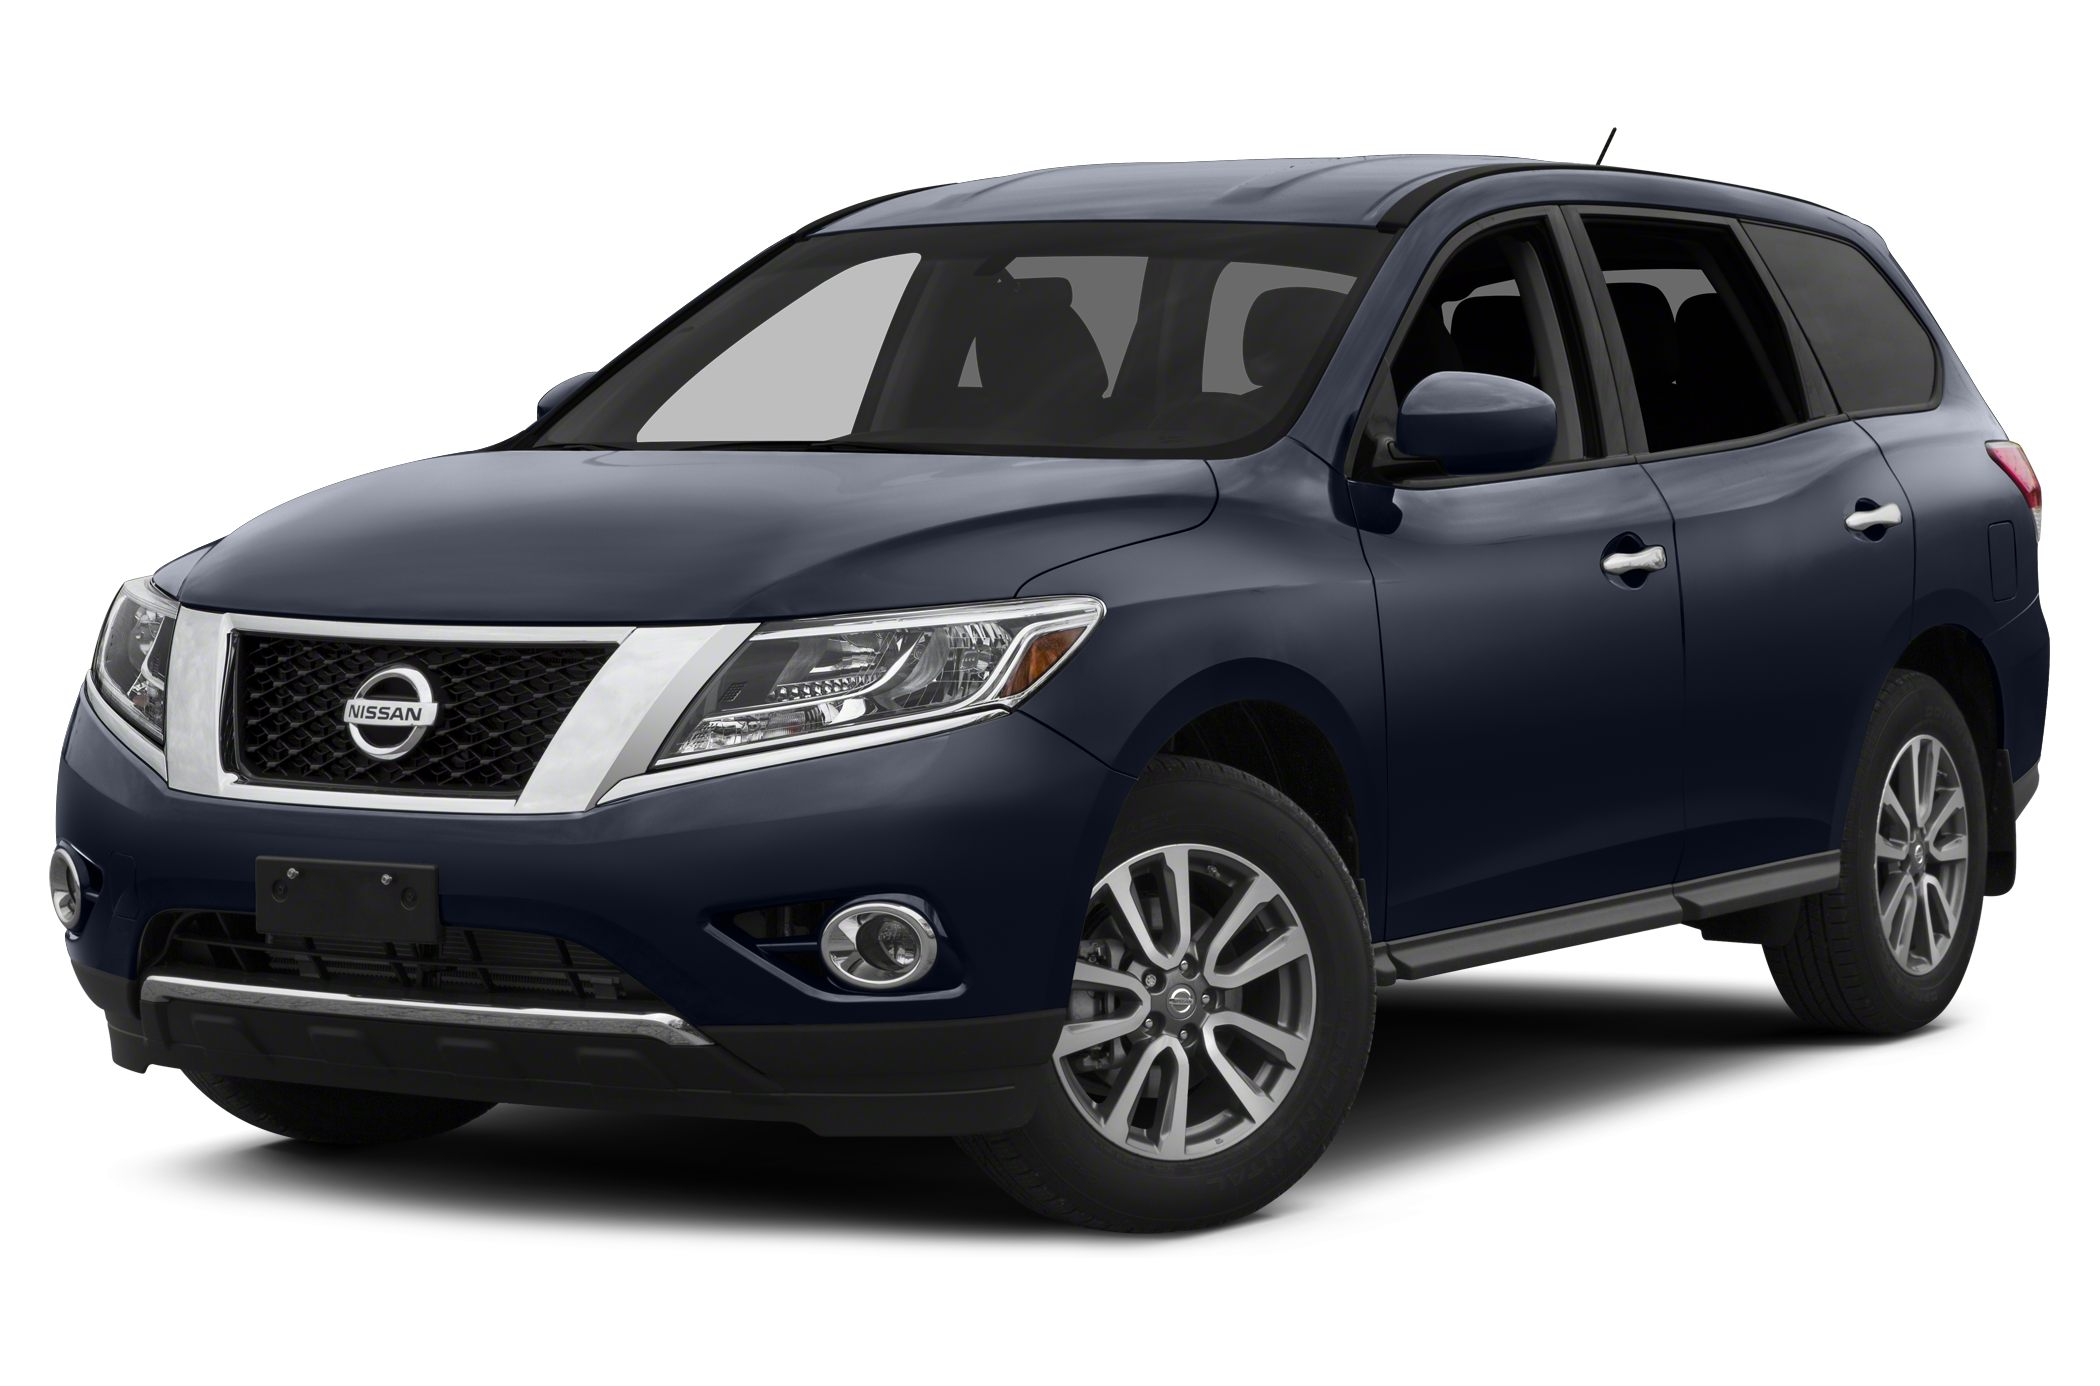 2015 Nissan Pathfinder SL SUV for sale in Greenville for $33,226 with 10 miles.